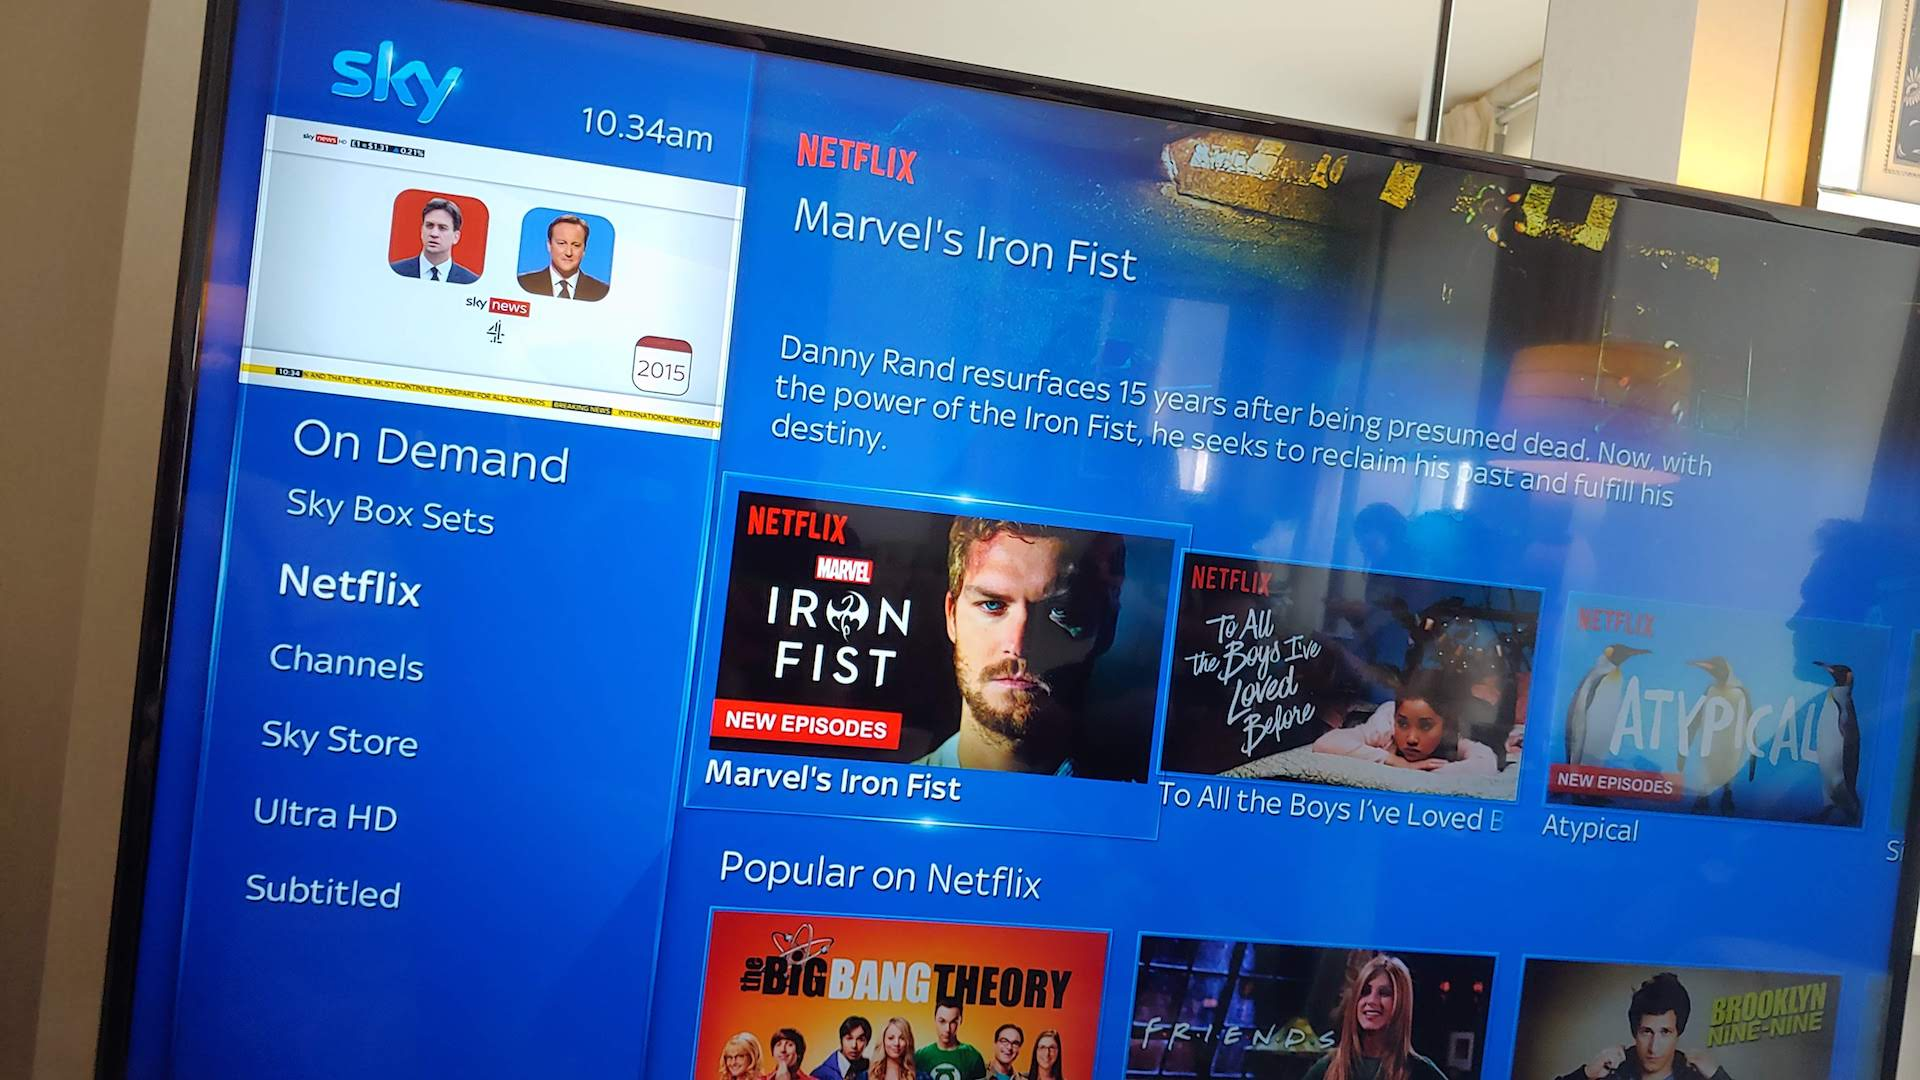 Netflix is now integrated into the core Sky Q interface.